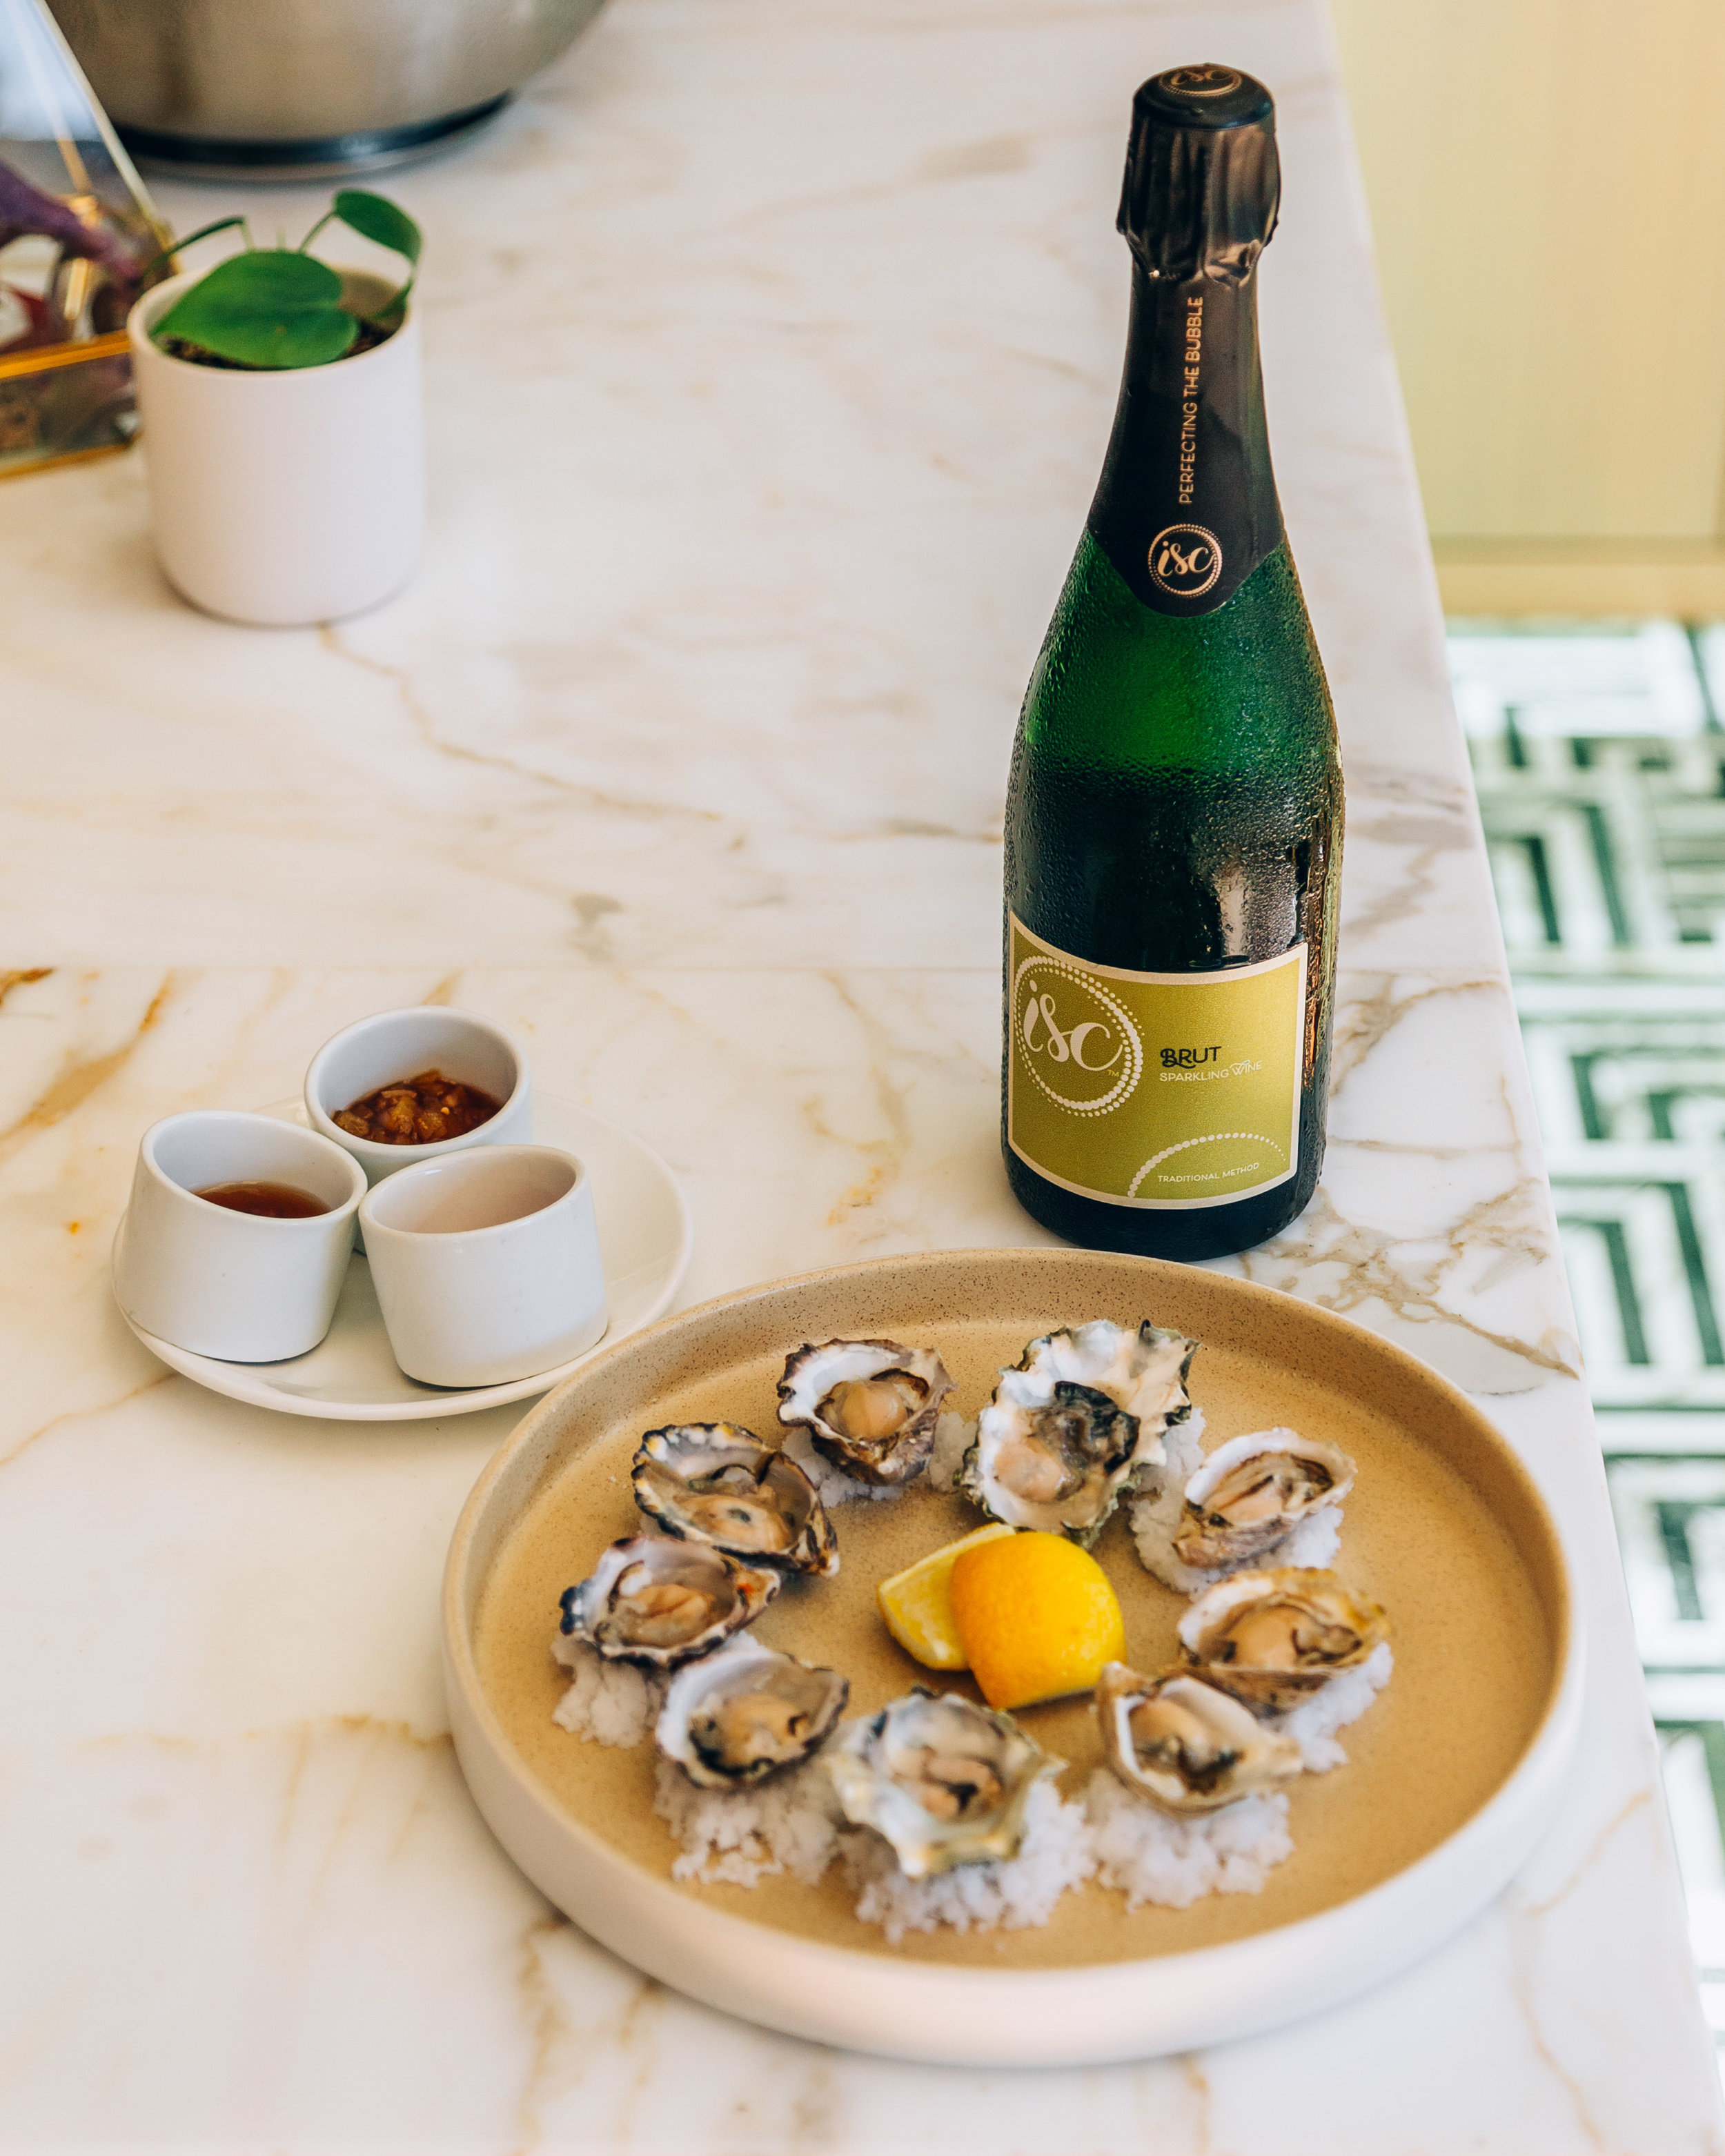 Oyster Night - Every Wednesday$1.50 Oysters+ house-made mignonetteFeaturing rotating wine & bubbles$7 per glass